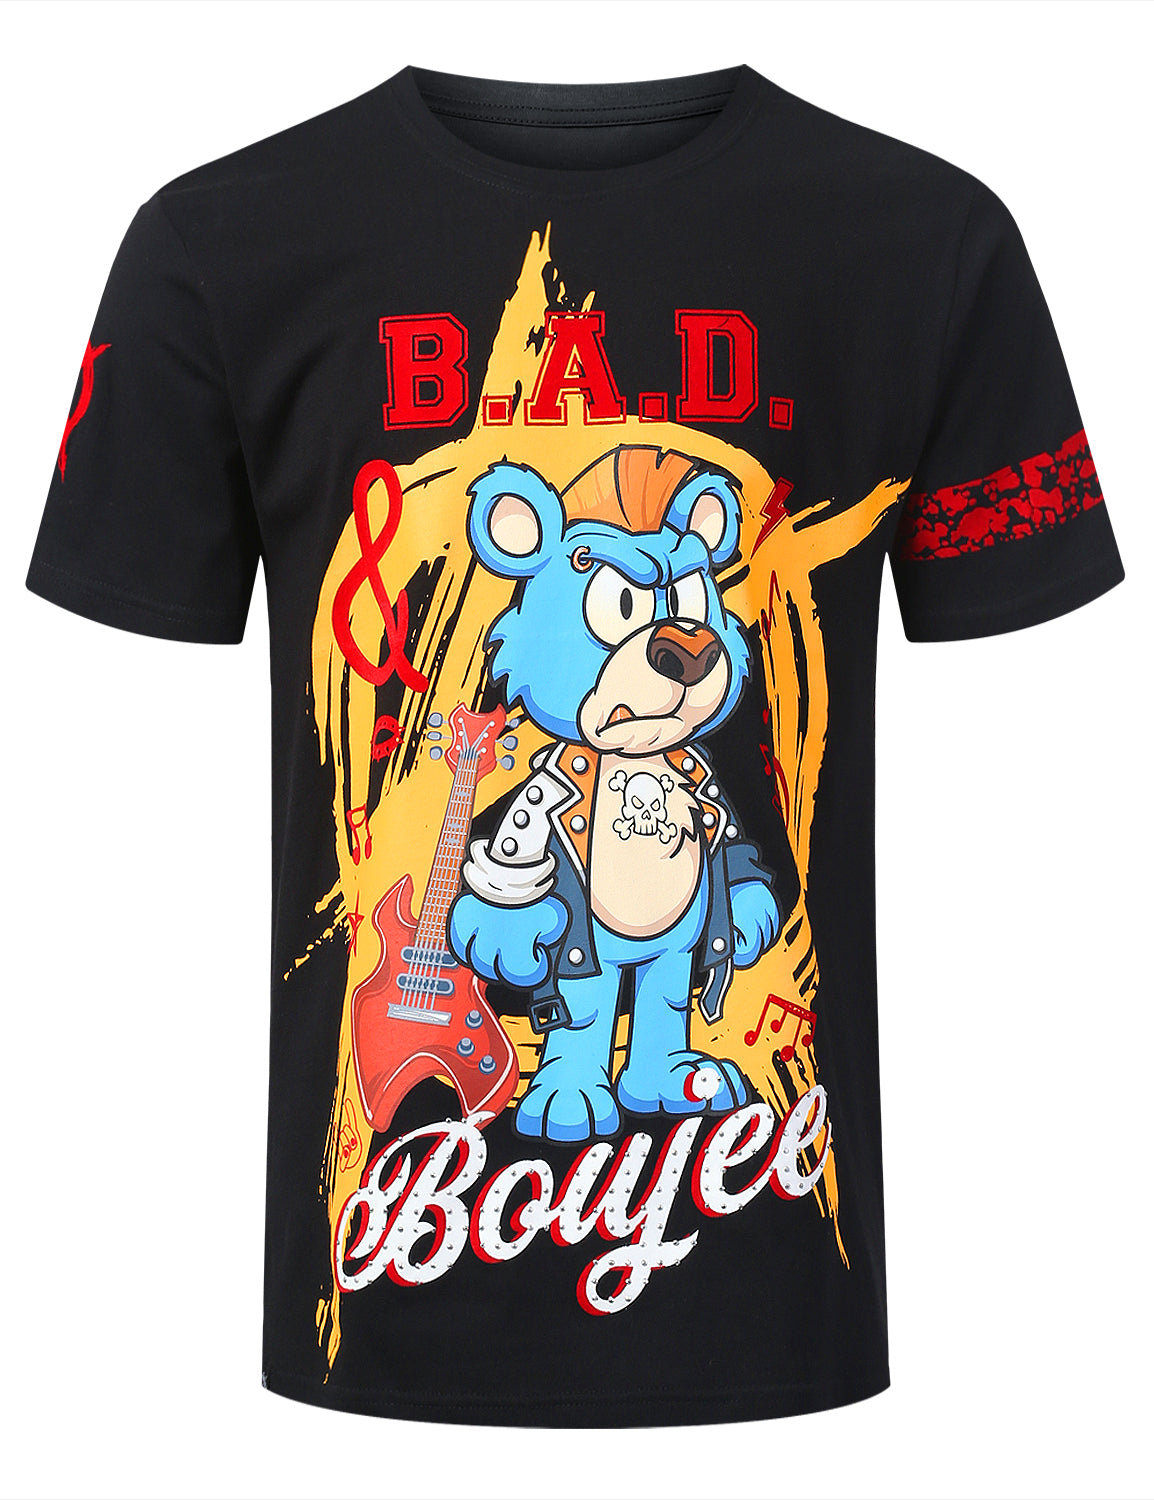 BLACK B.A.D. Bear Graphic T-shirt - URBANCREWS